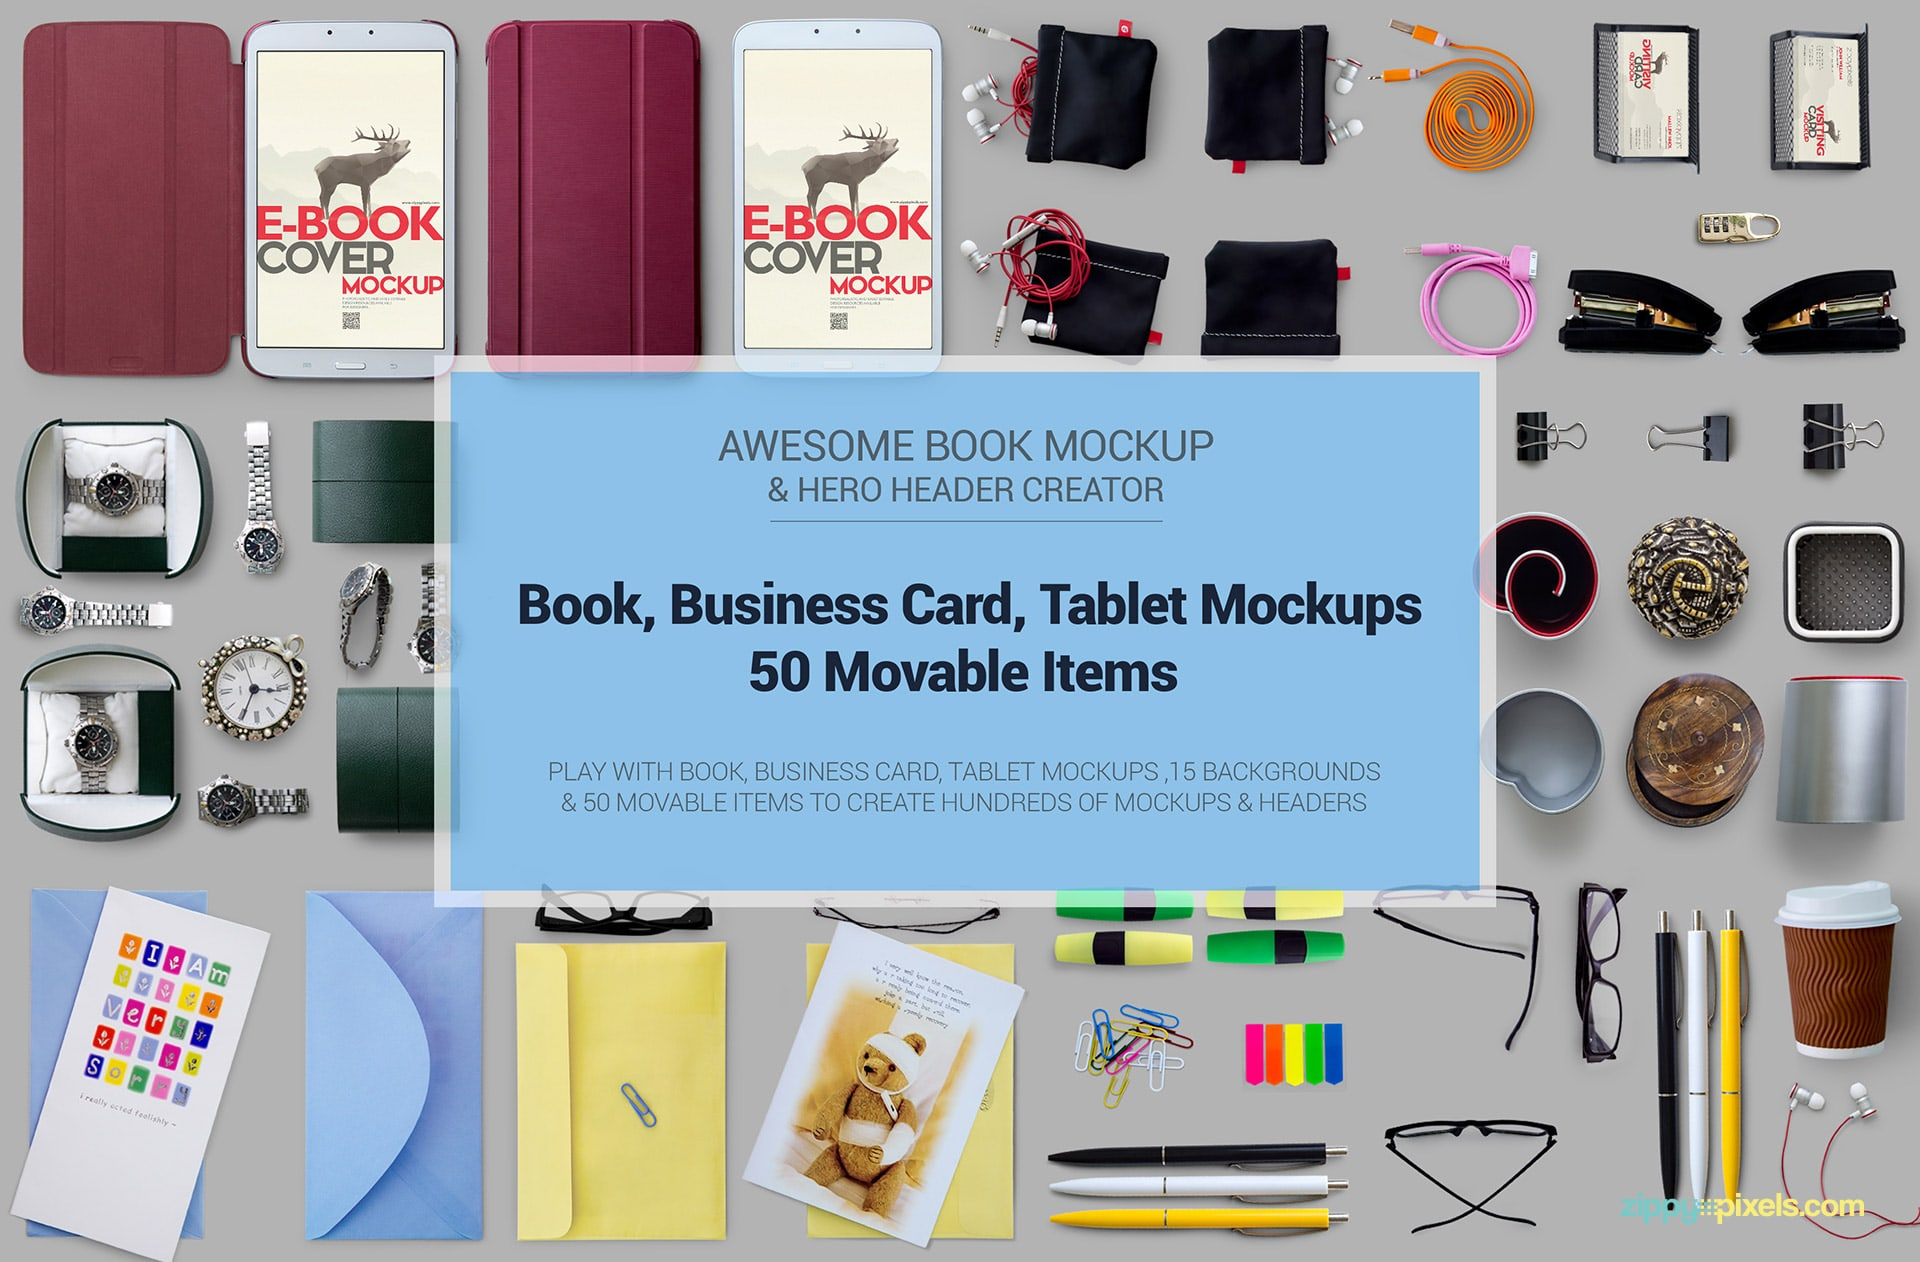 Book-mockup-scene-generator-50-items-customizable-backgrounds-824x542